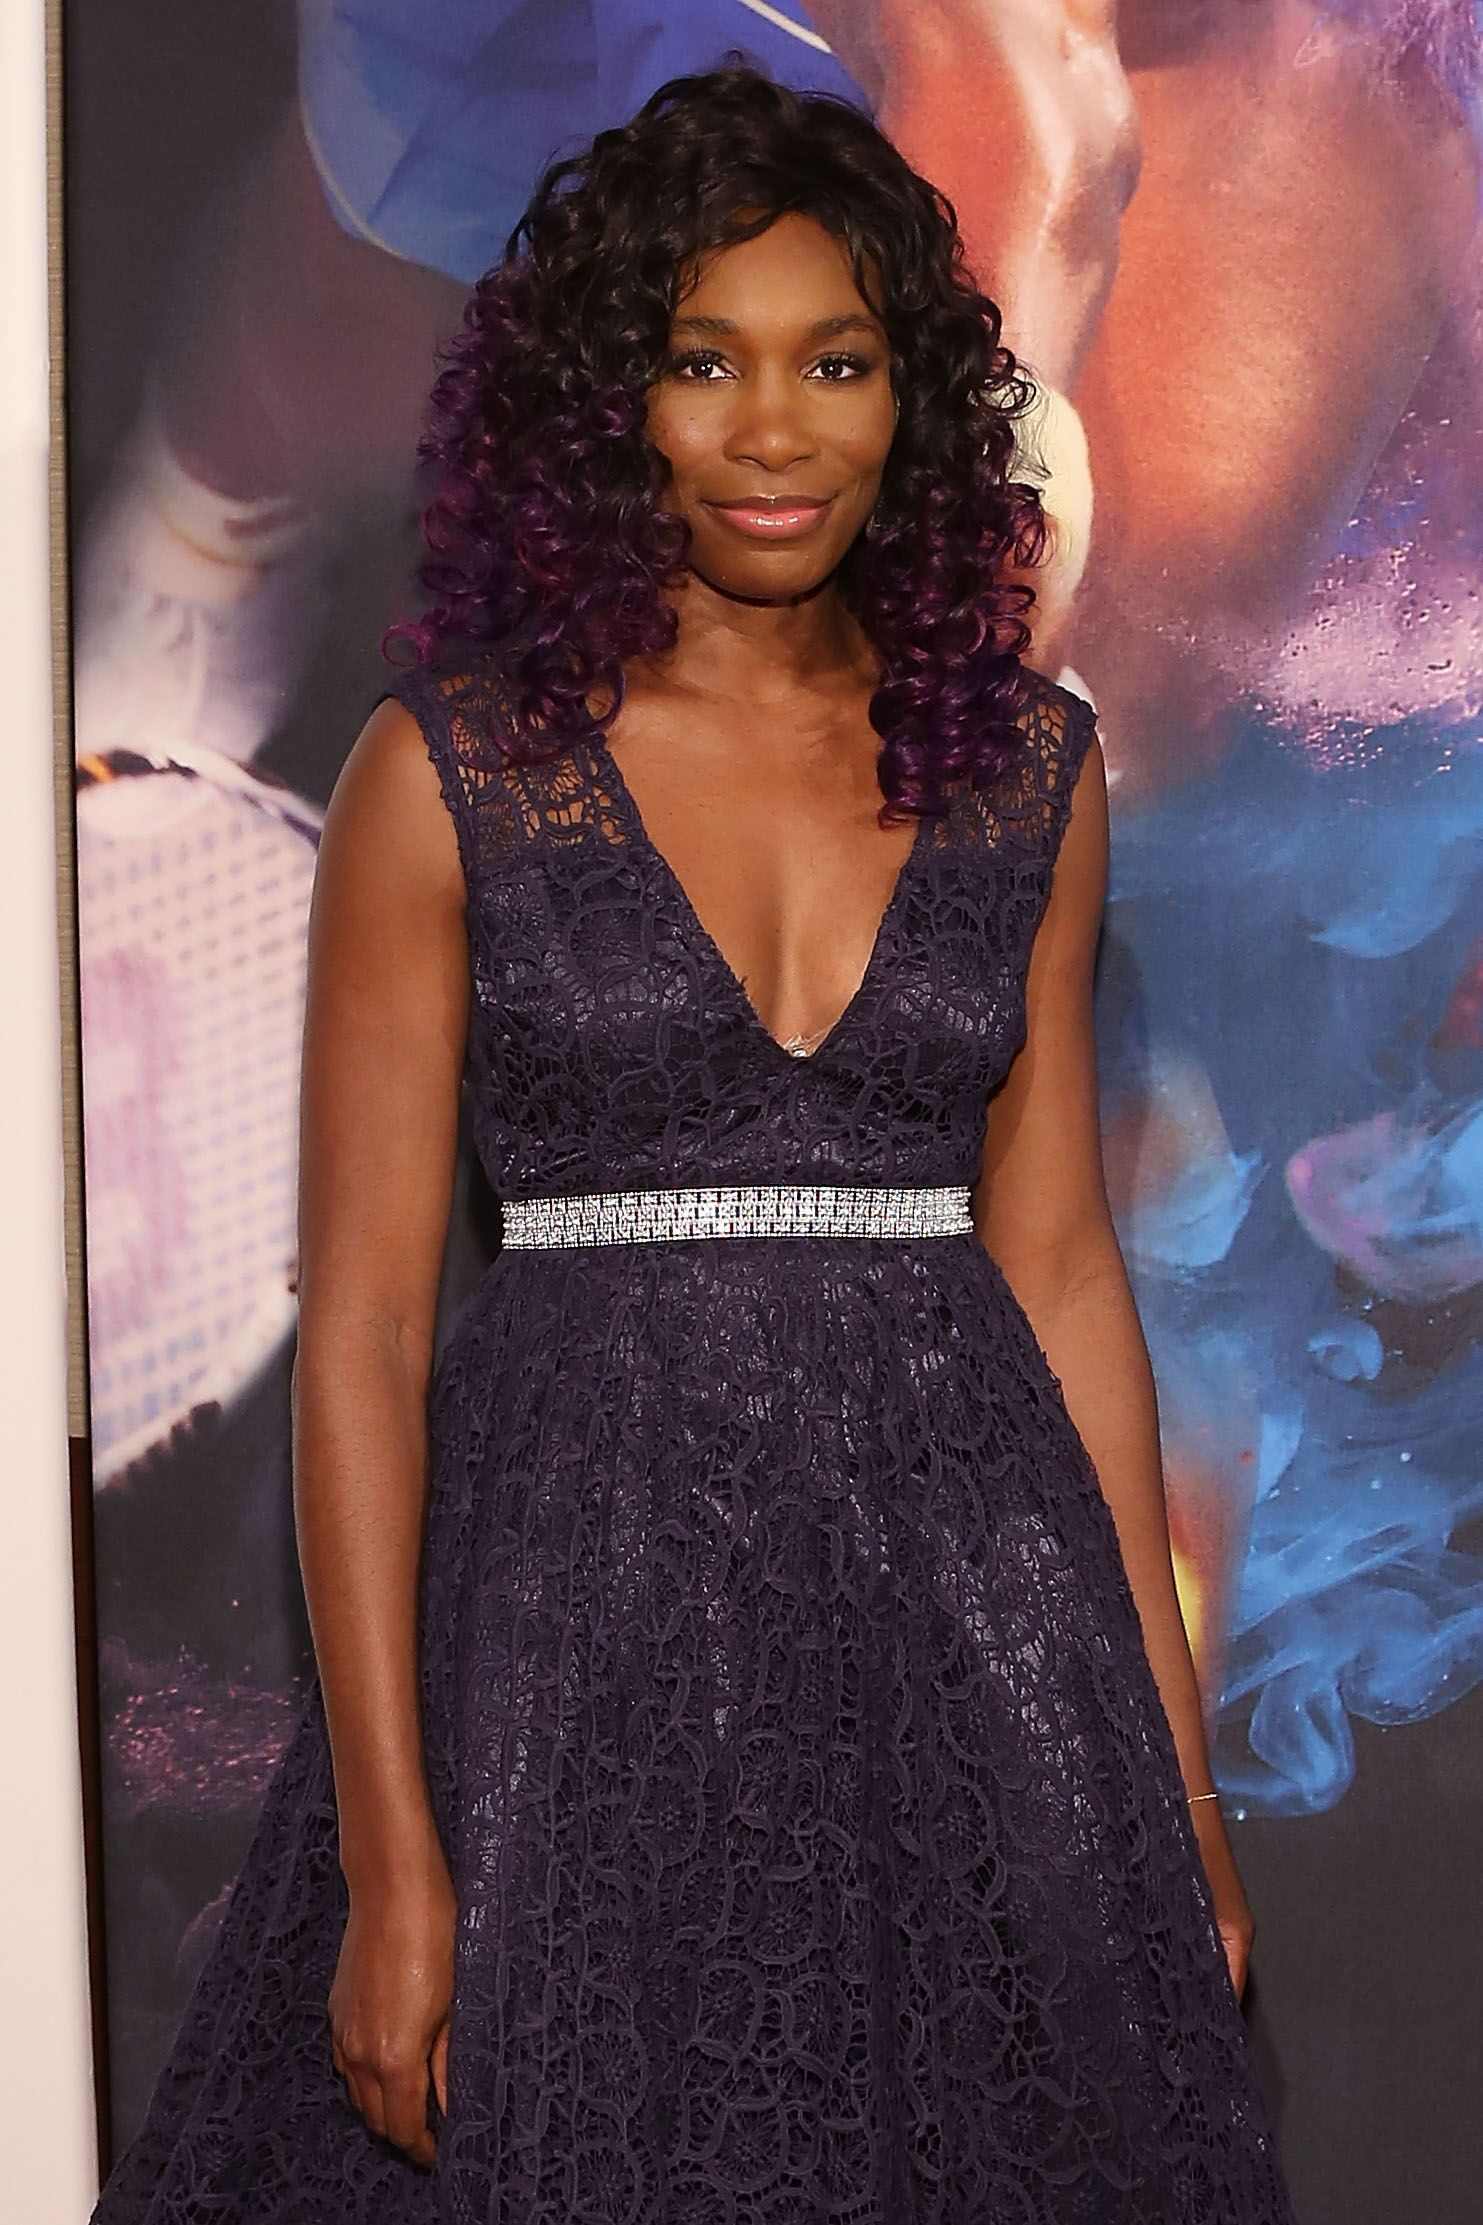 """Venus Williams at the """"Star Wars"""" premiere/ Source: Getty Images"""